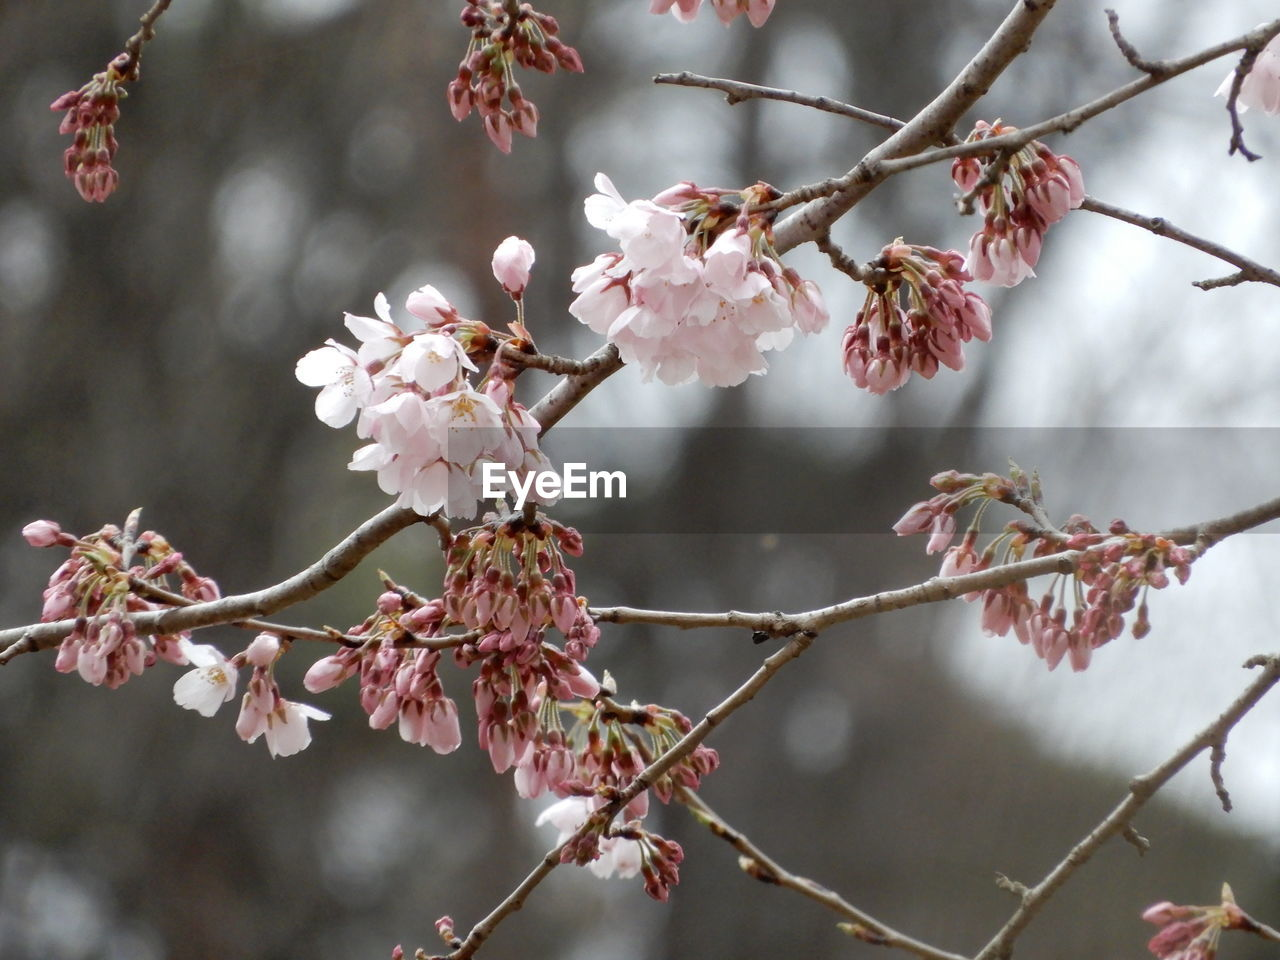 flowering plant, flower, plant, growth, beauty in nature, fragility, vulnerability, tree, pink color, blossom, freshness, branch, close-up, springtime, focus on foreground, twig, petal, no people, nature, day, cherry blossom, cherry tree, outdoors, flower head, plum blossom, pollen, spring